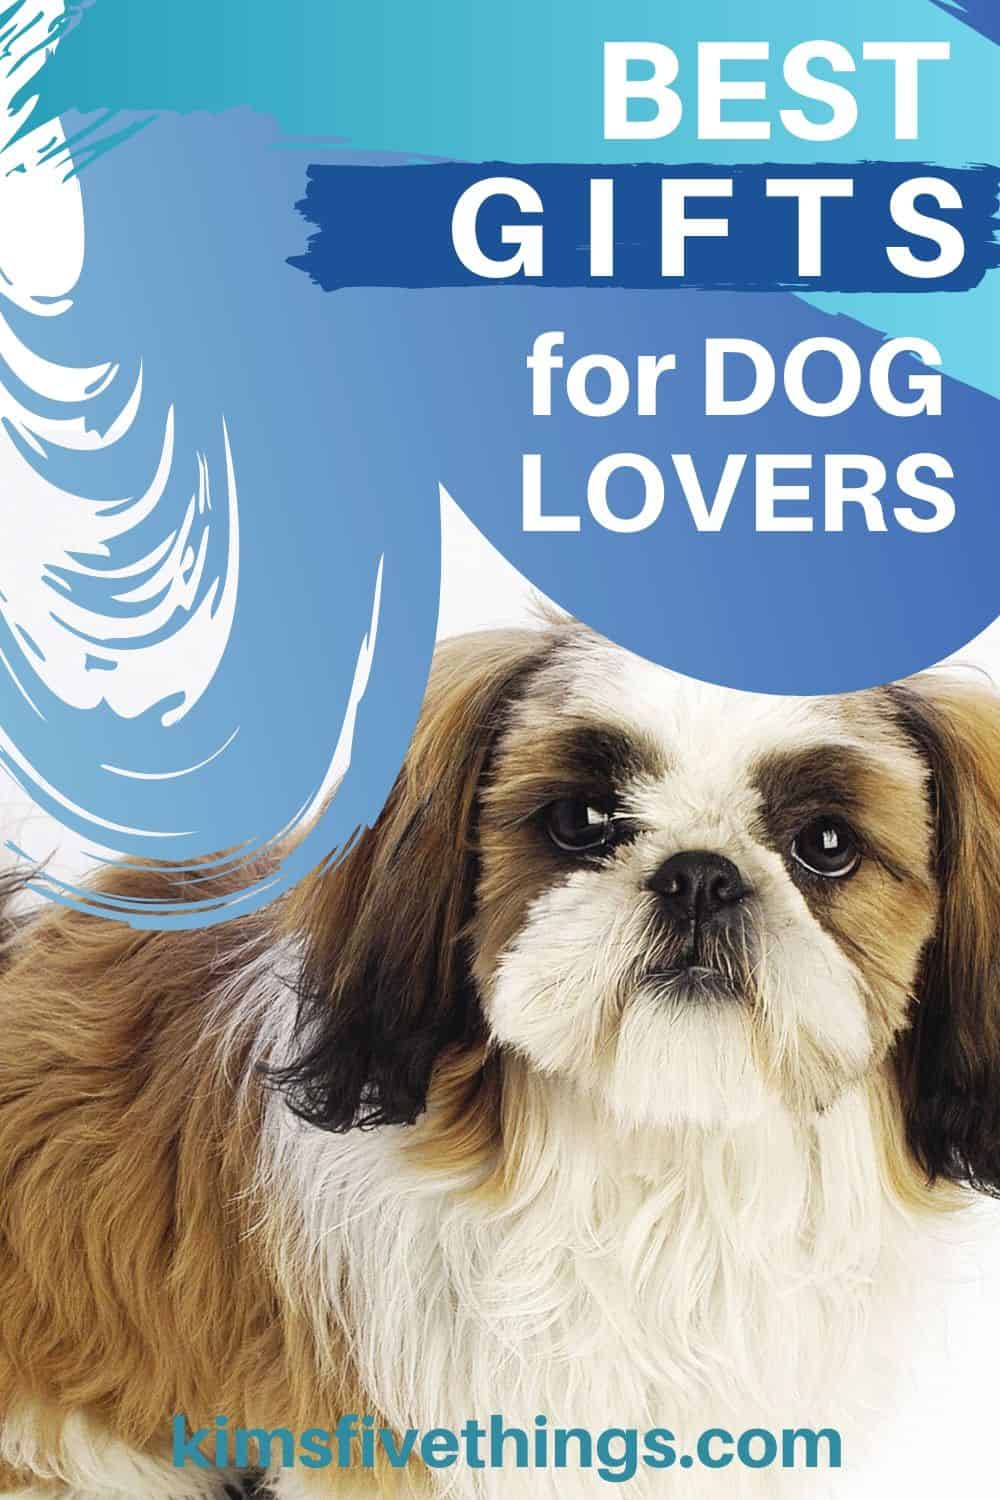 Best Gifts for Dog Owners